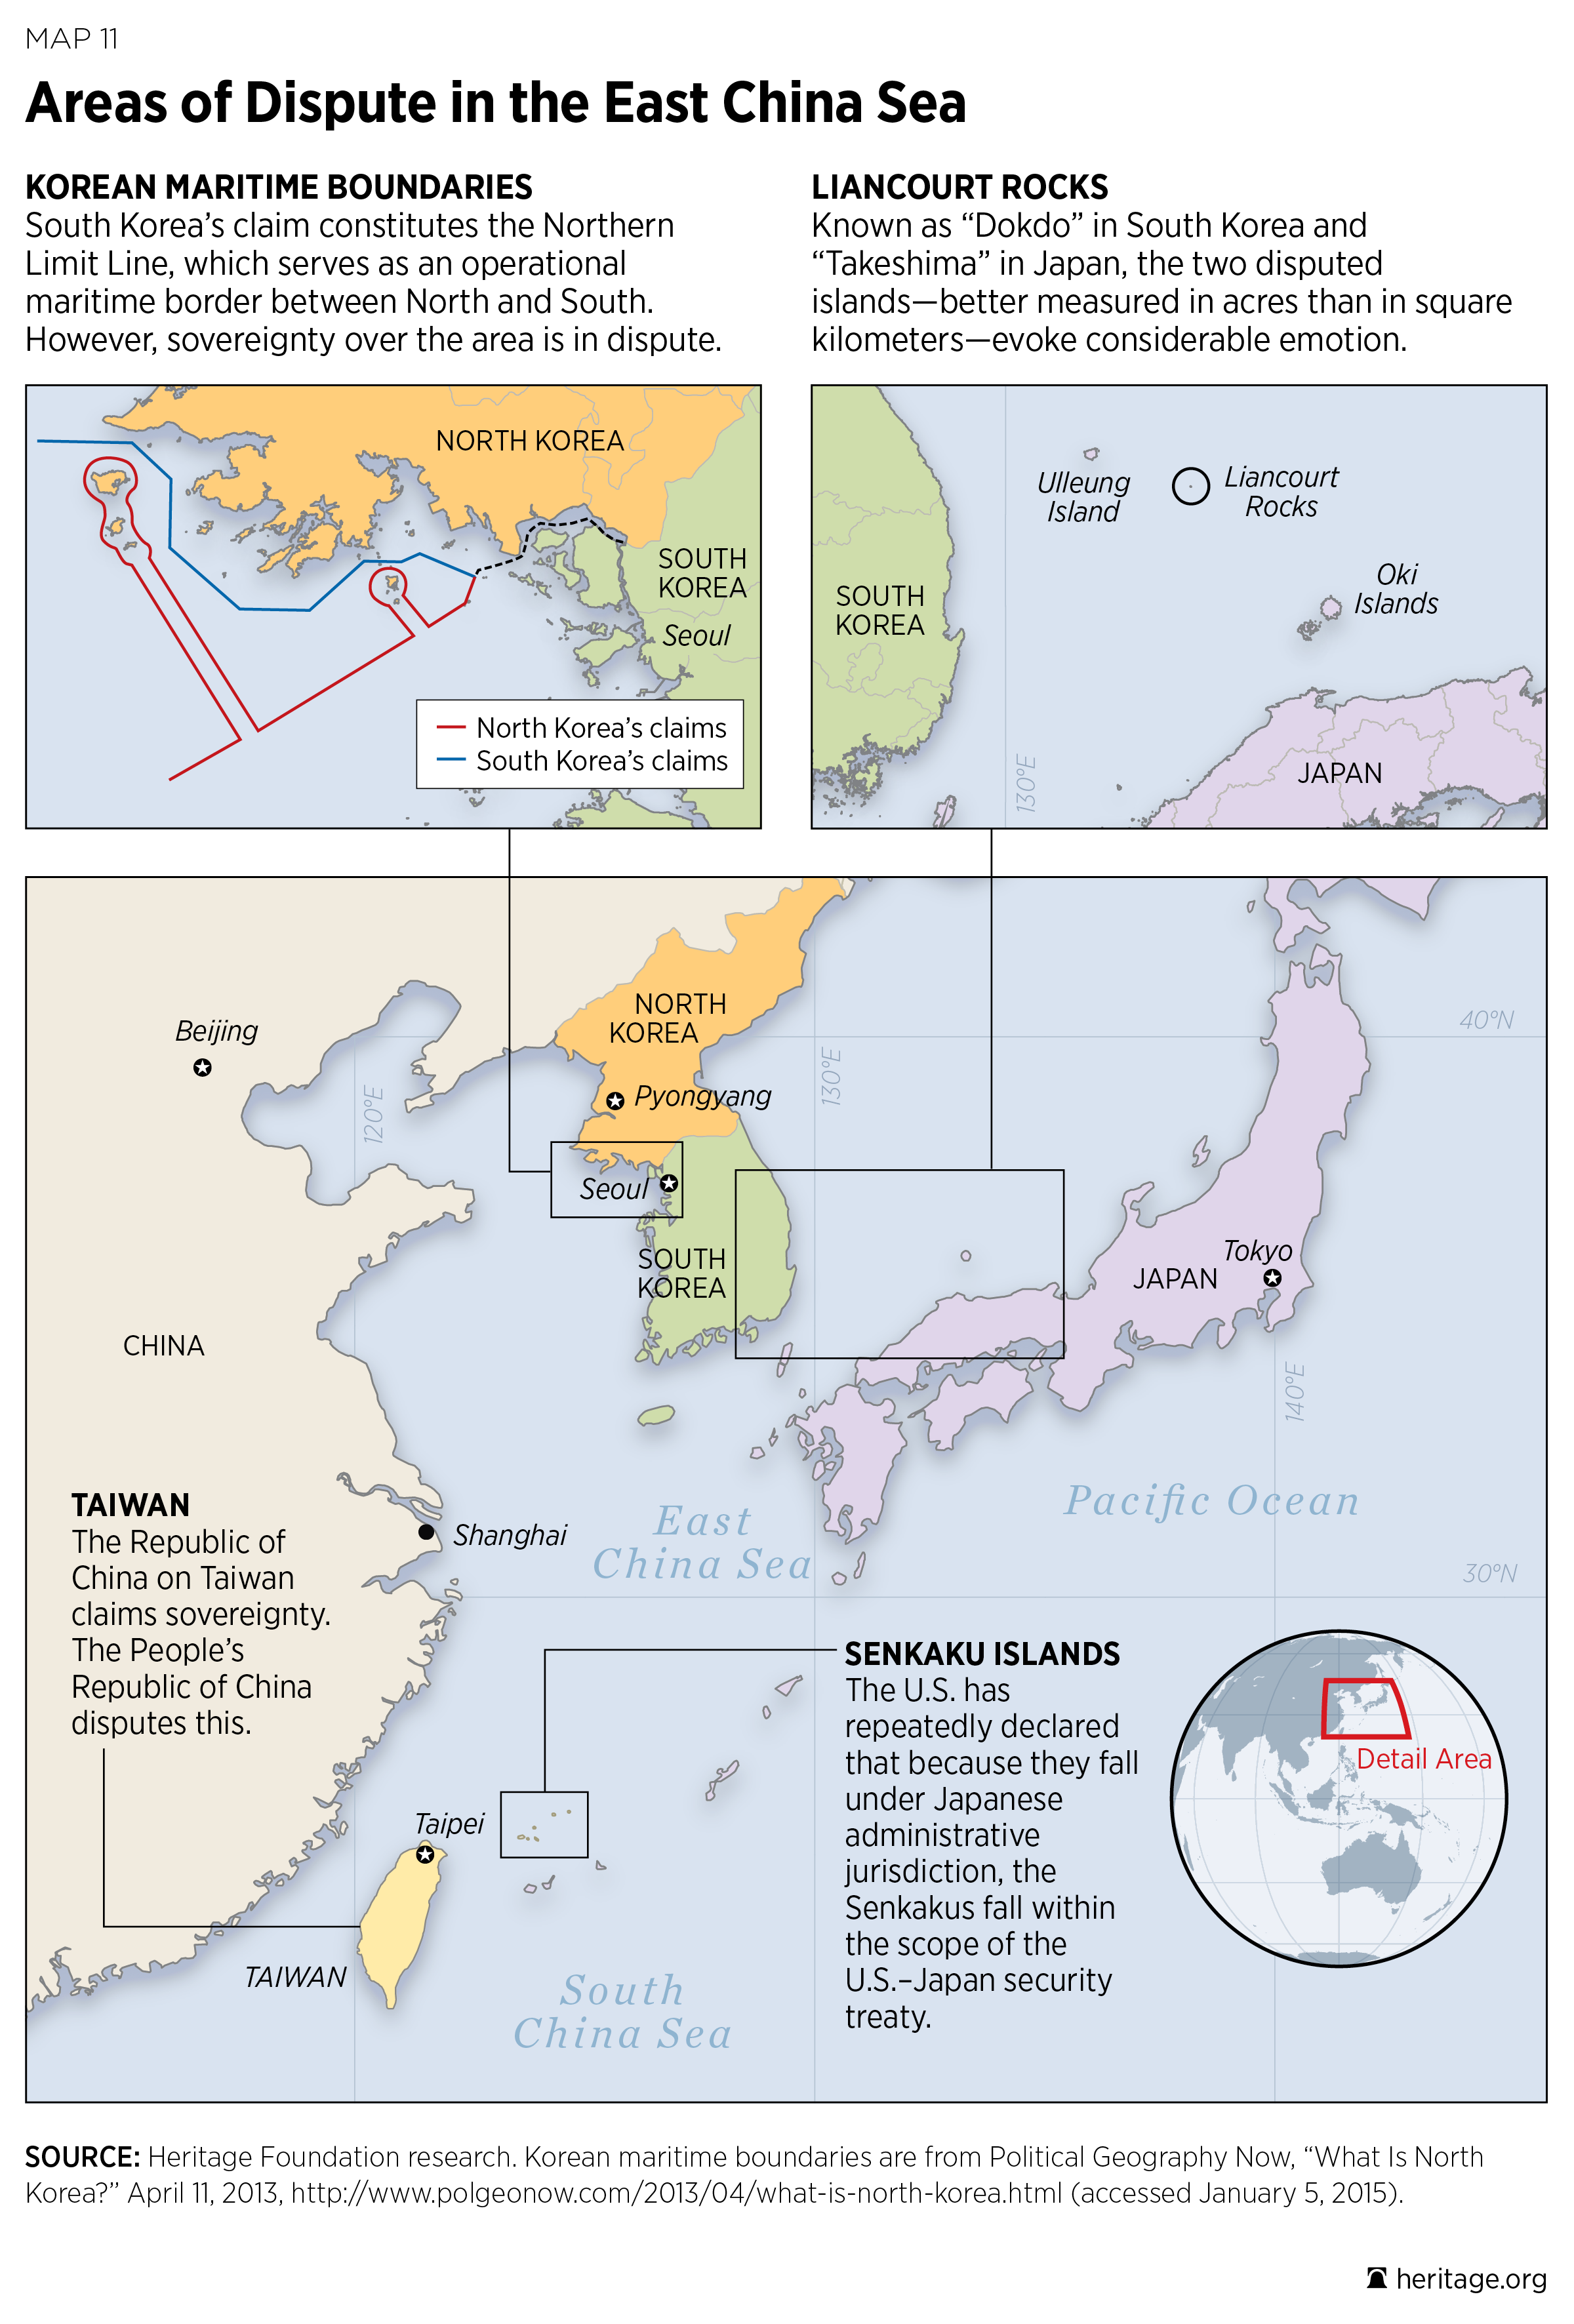 Areas of Dispute in the East China Sea